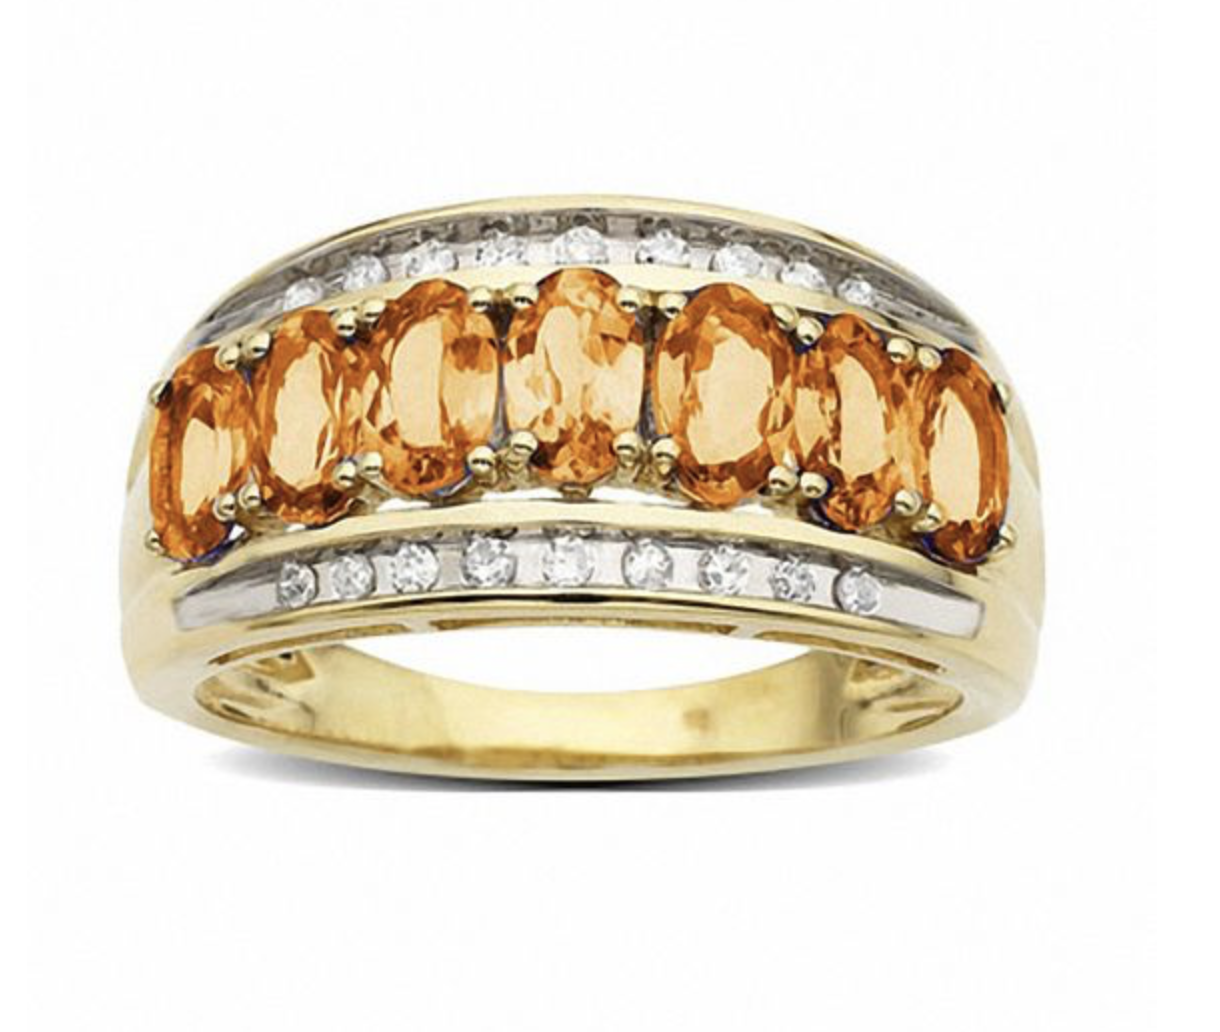 Orange Sapphire Ring in 14K Gold with Diamond Accents